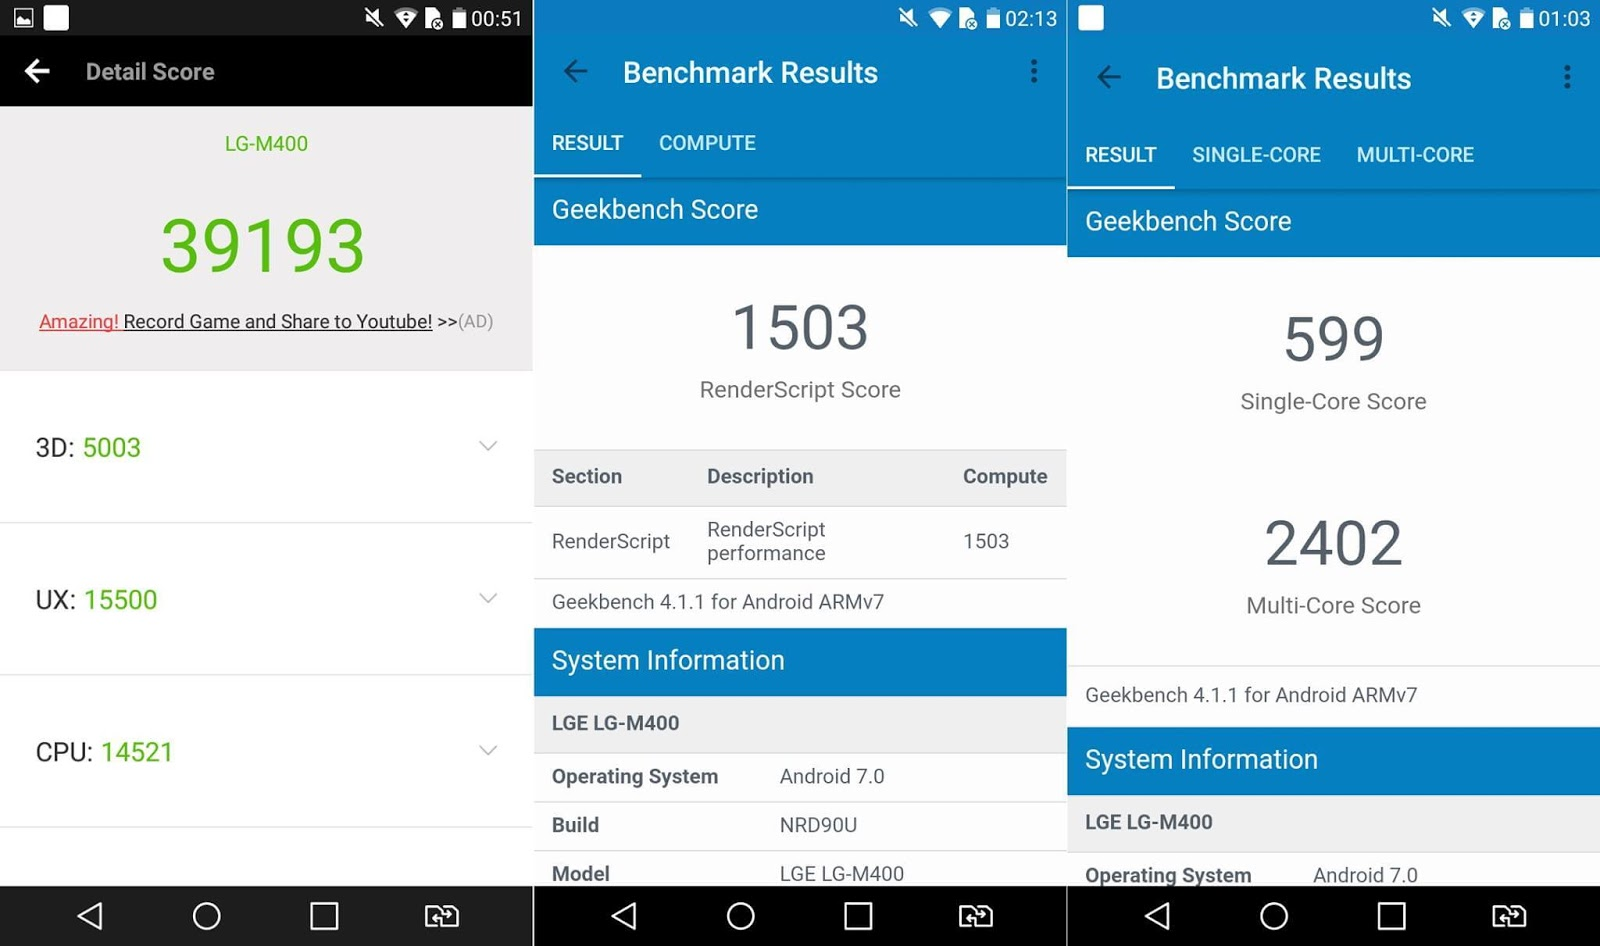 LG Stylus 3 Review - Benchmark Results